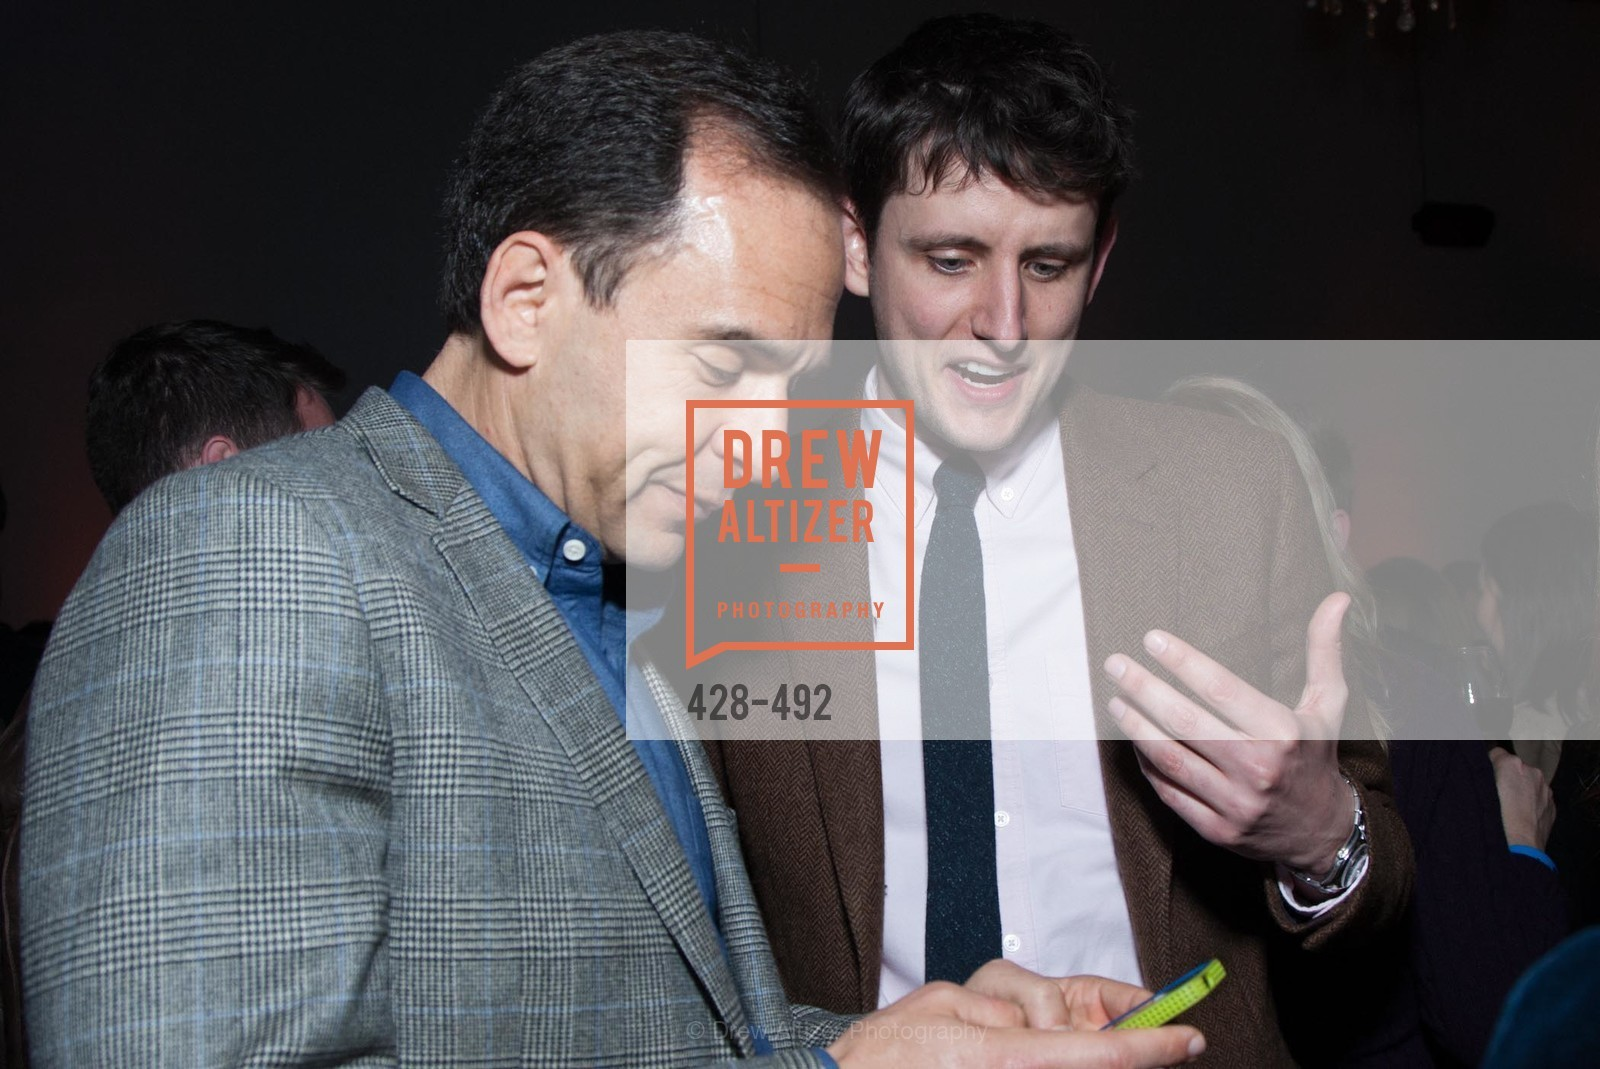 Zach Woods, HBO Original Series 'Silicon Valley' Bay Area Premiere, US. US, April 2nd, 2014,Drew Altizer, Drew Altizer Photography, full-service event agency, private events, San Francisco photographer, photographer California